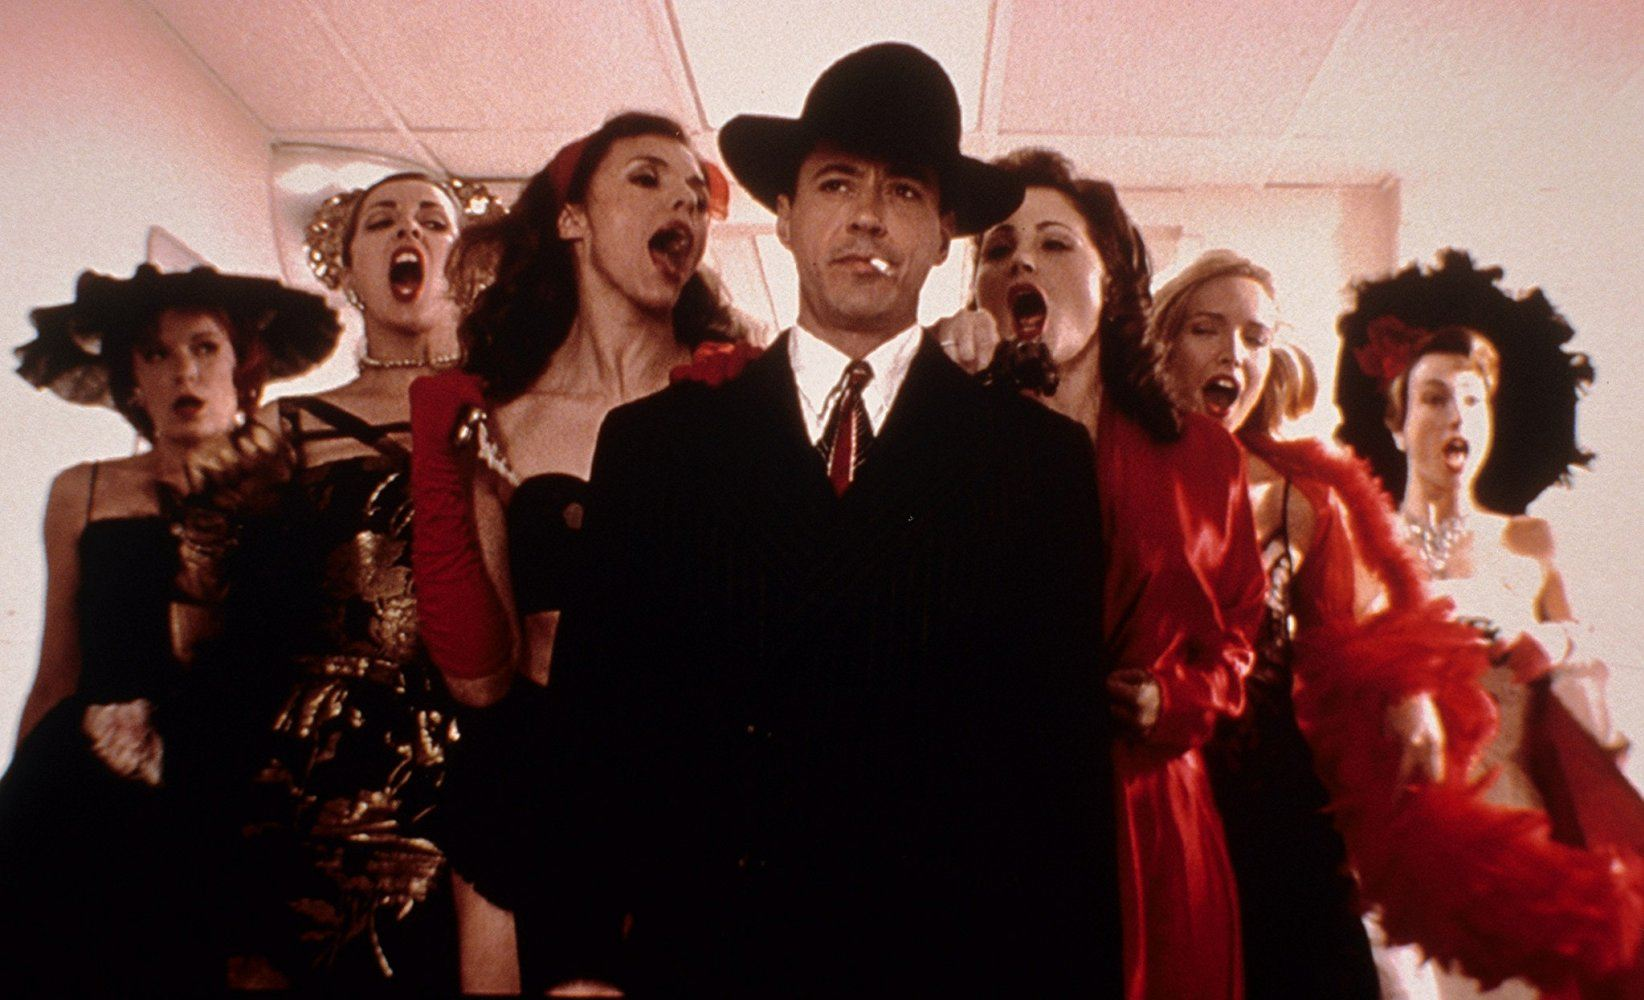 Robert Downey Jr in The Singing Detective